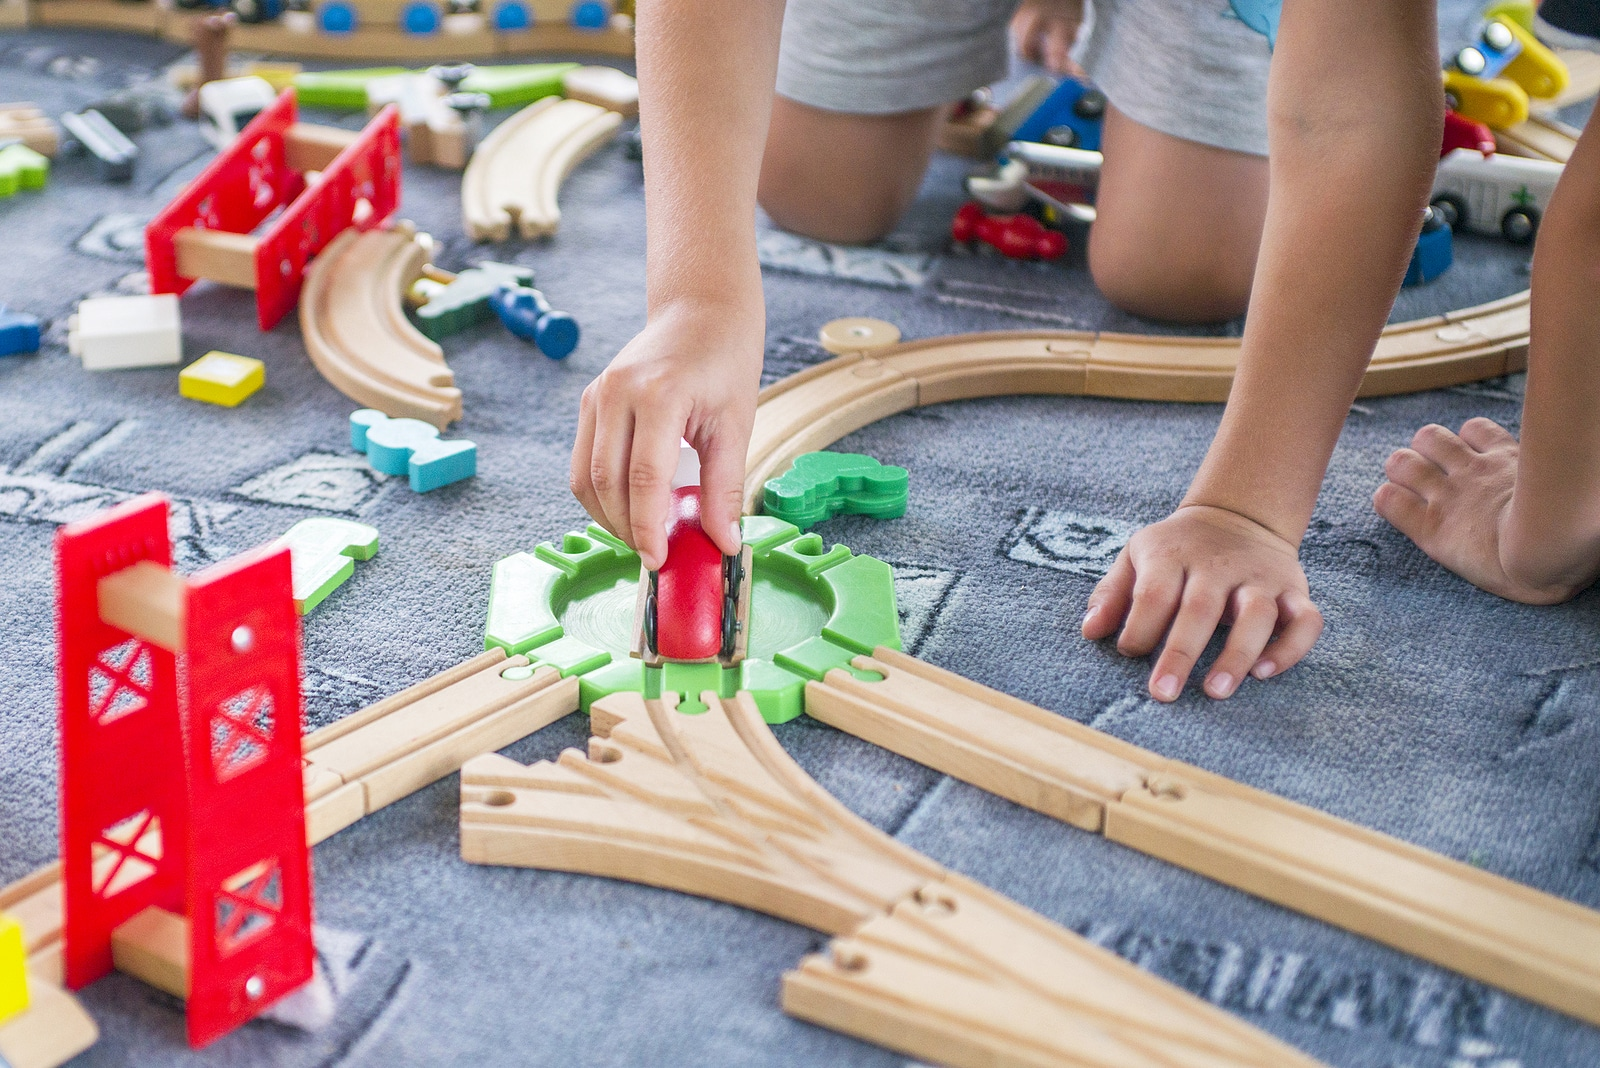 Children playing with wooden train